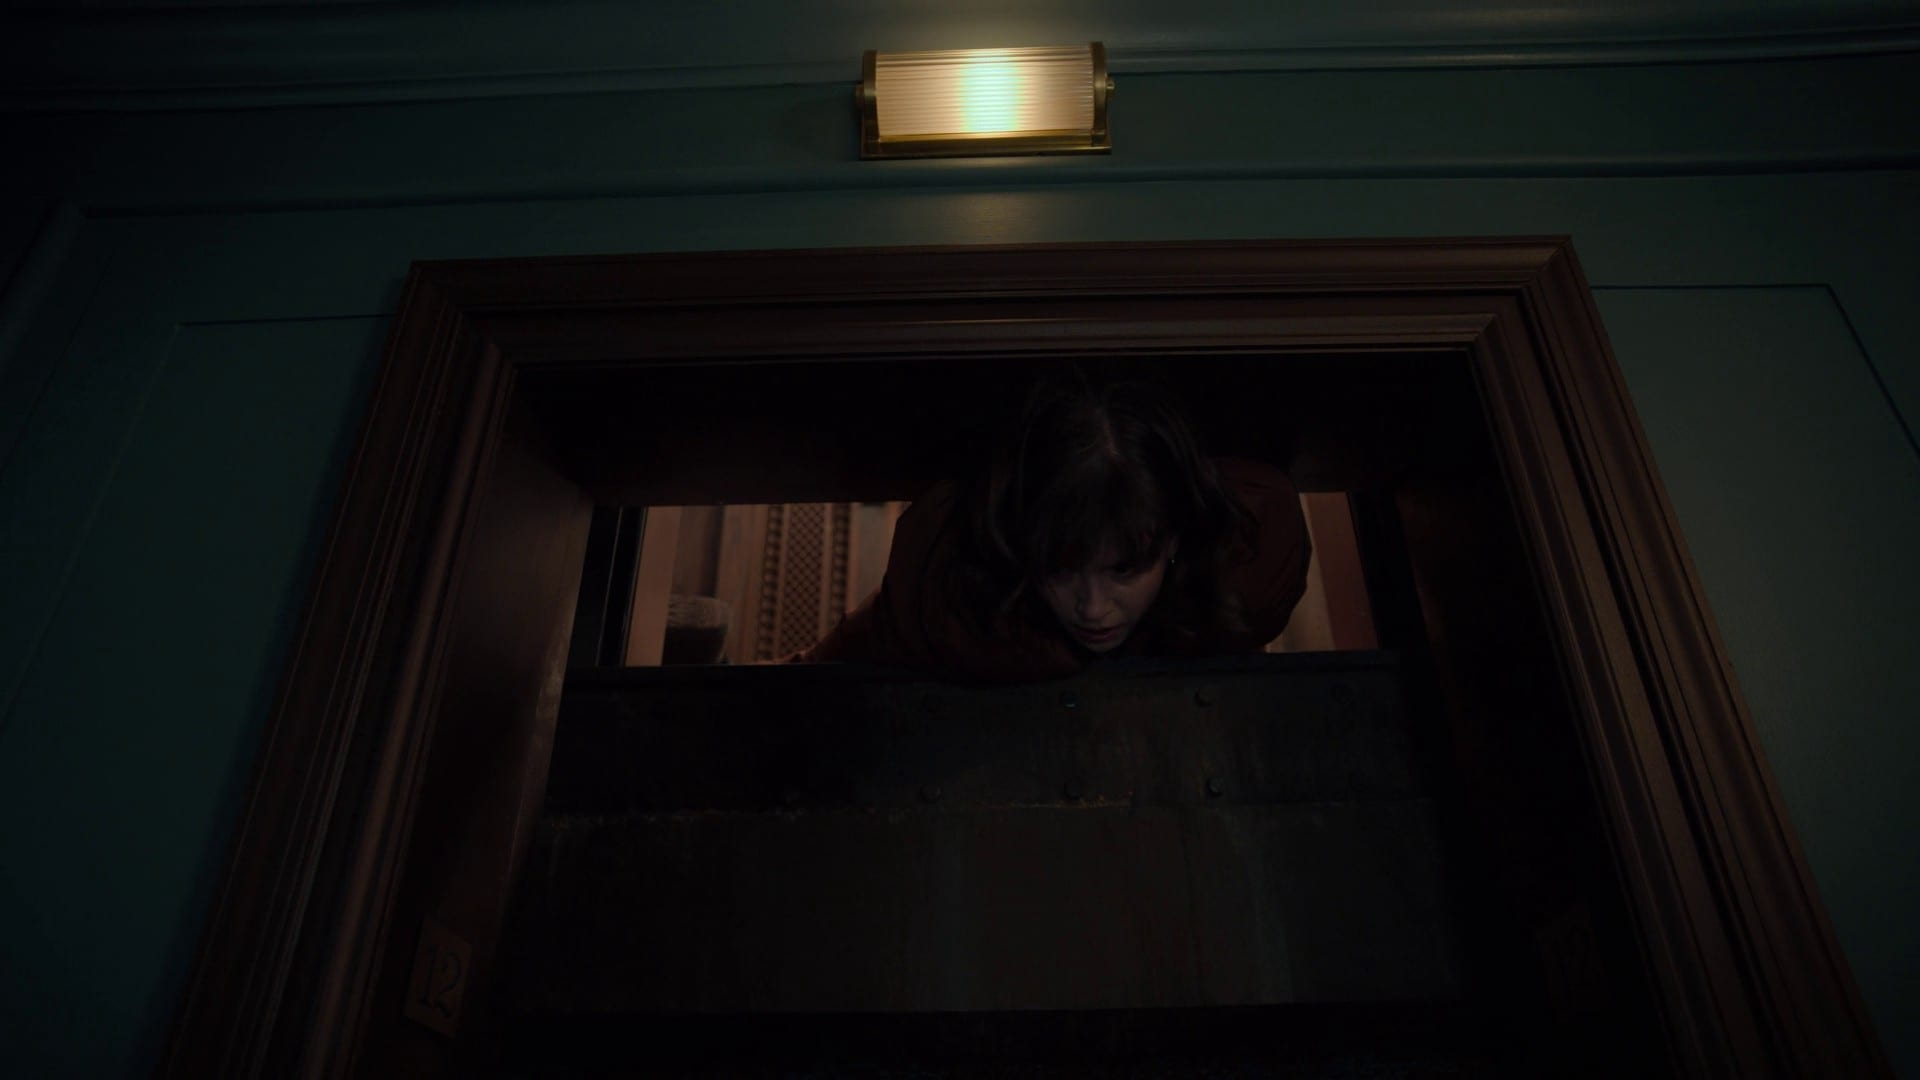 How Did Evil S02E04 End?